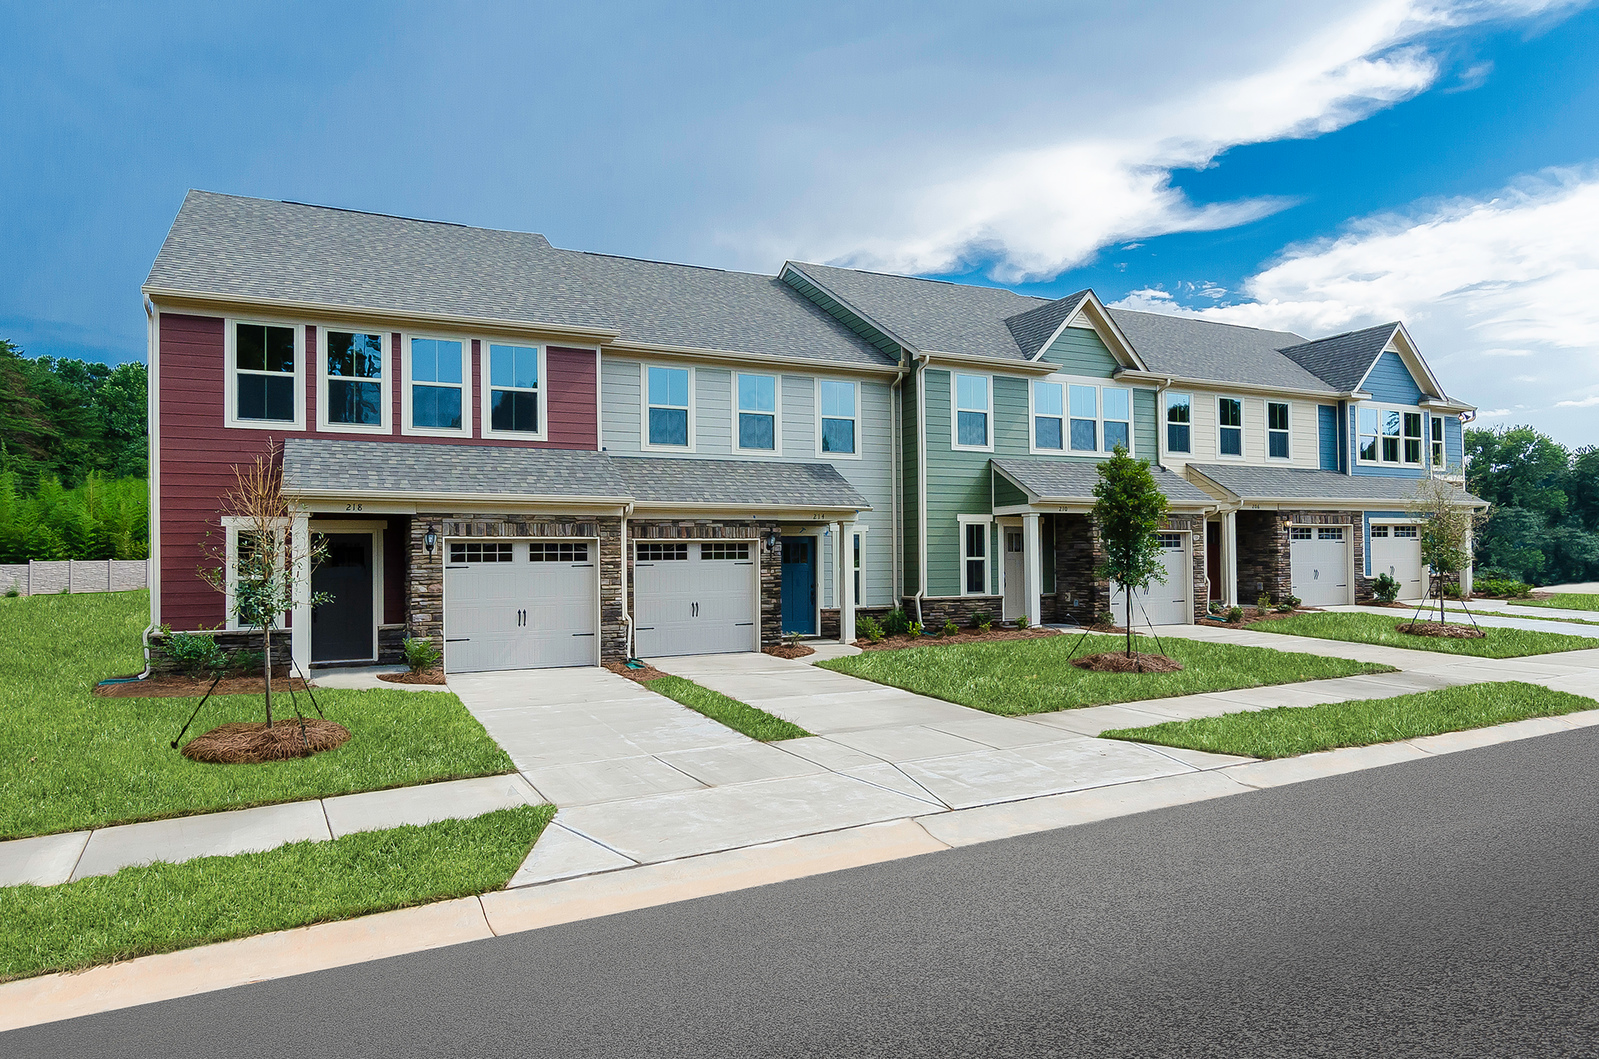 New Homes For Sale At Park Meadows In Stallings Nc Within The Union